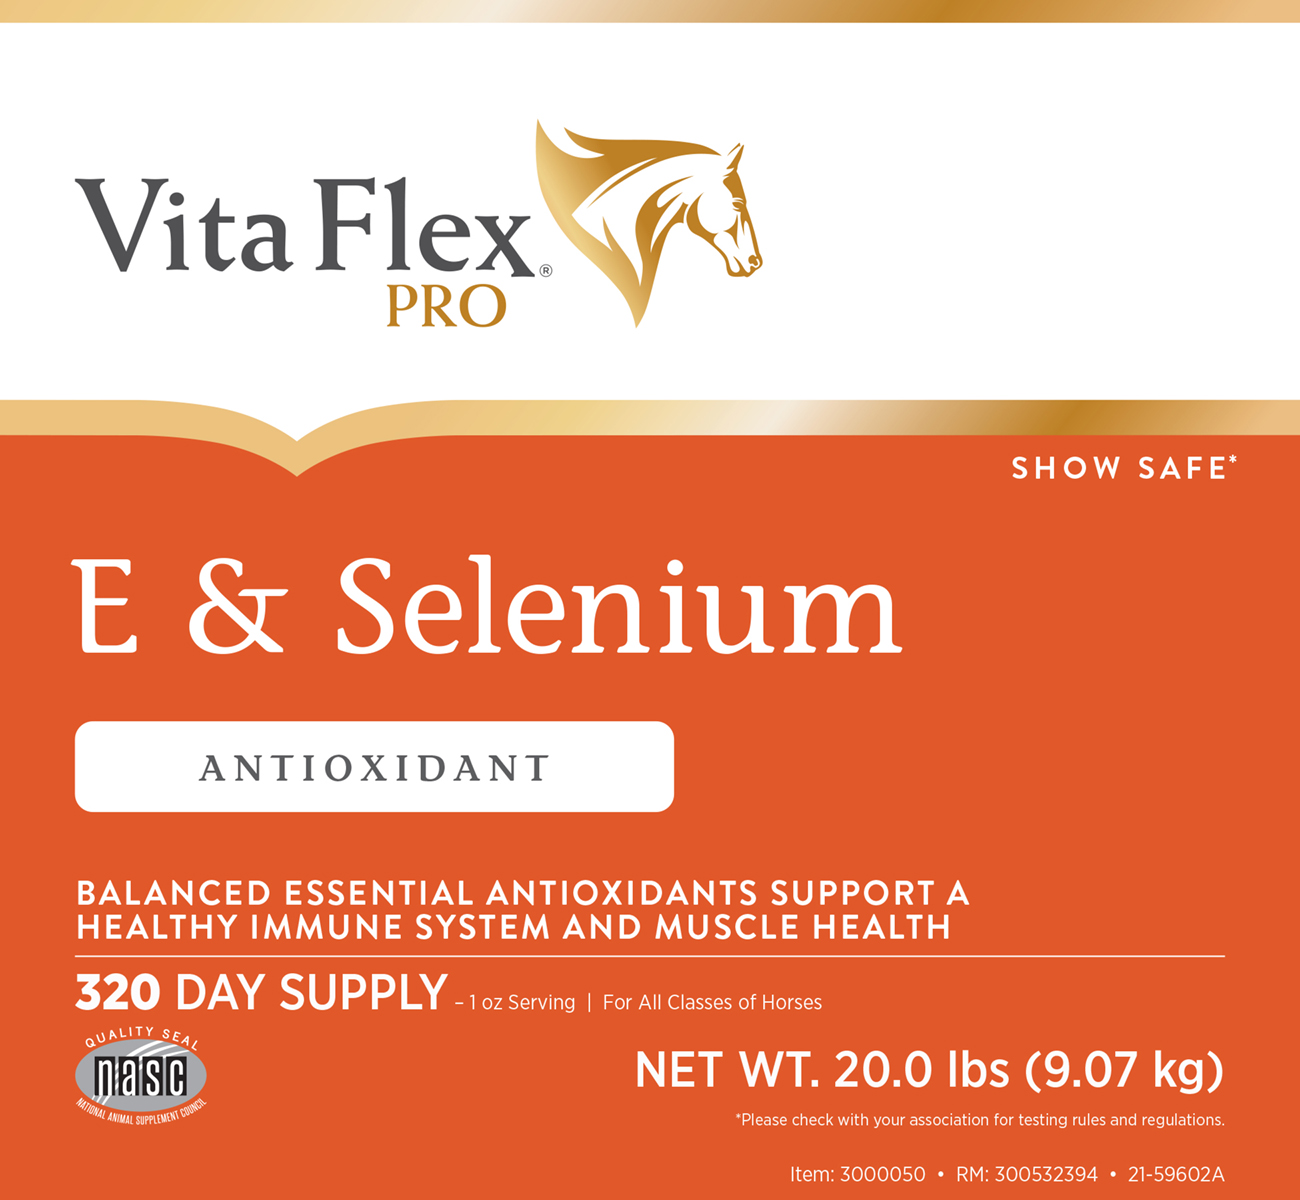 Vita Flex E and Selenium 20lb Label Front